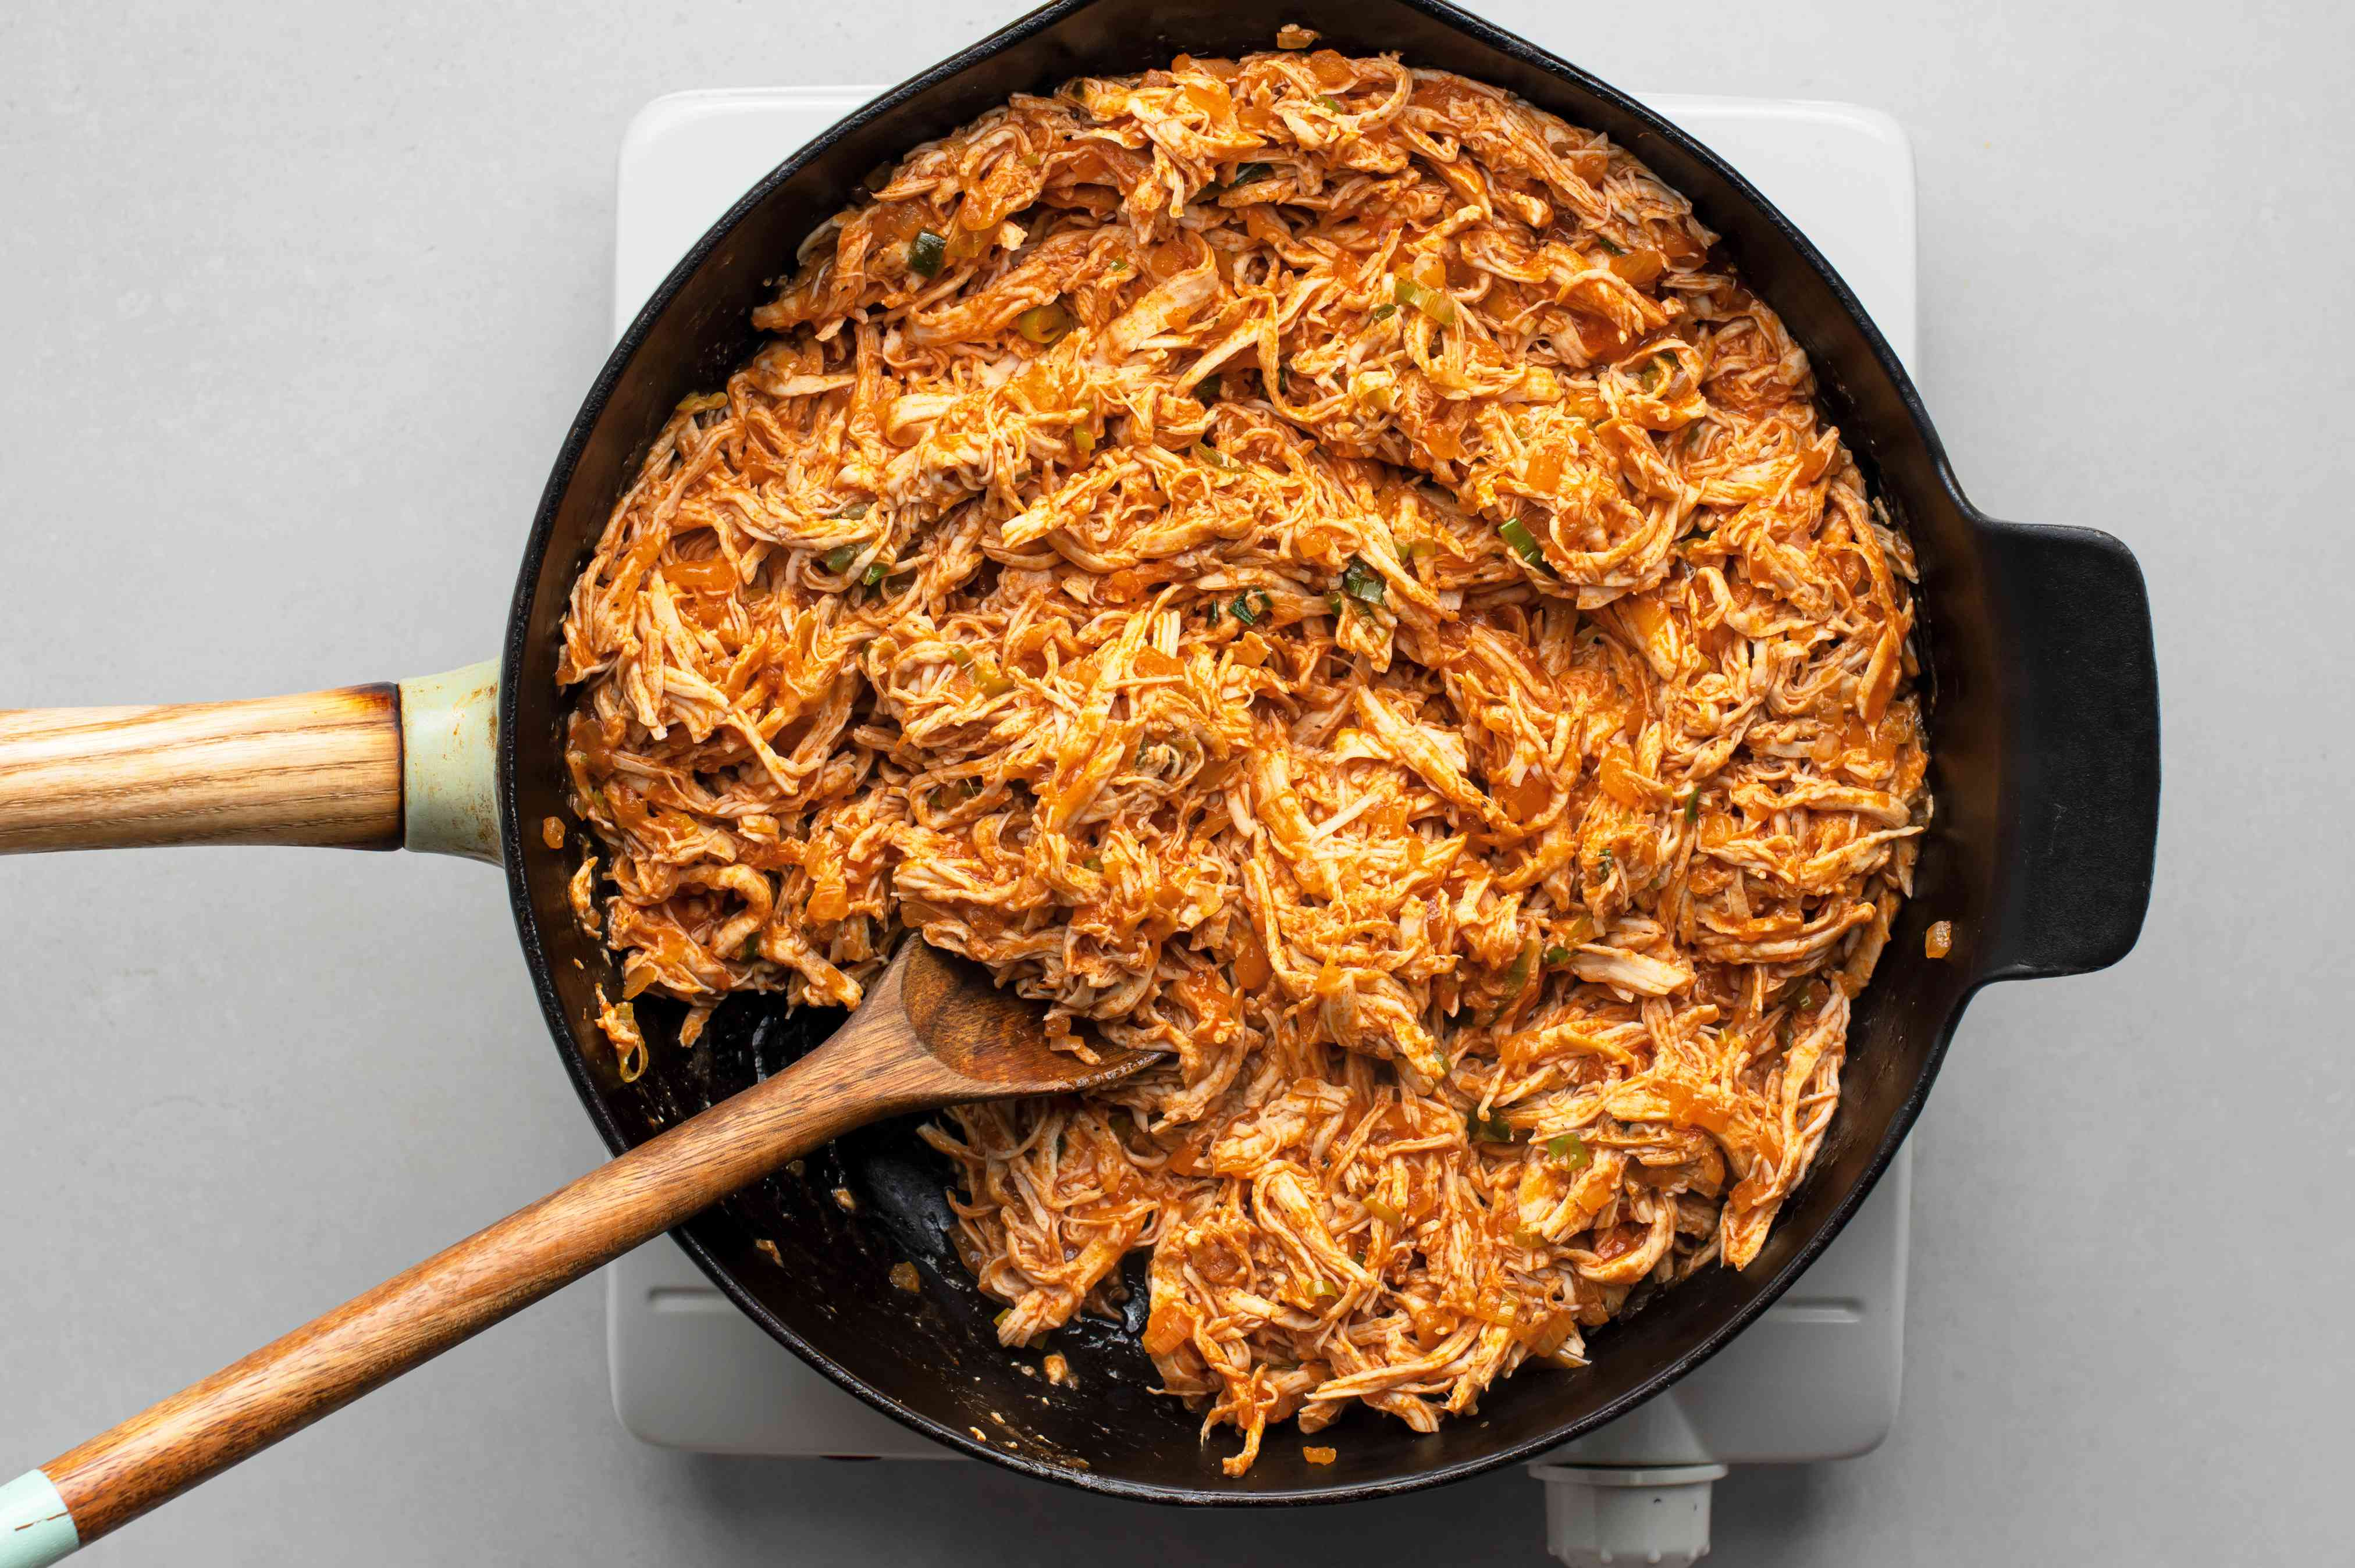 Shredded chicken cooking with the tomato onion mixture in the skillet